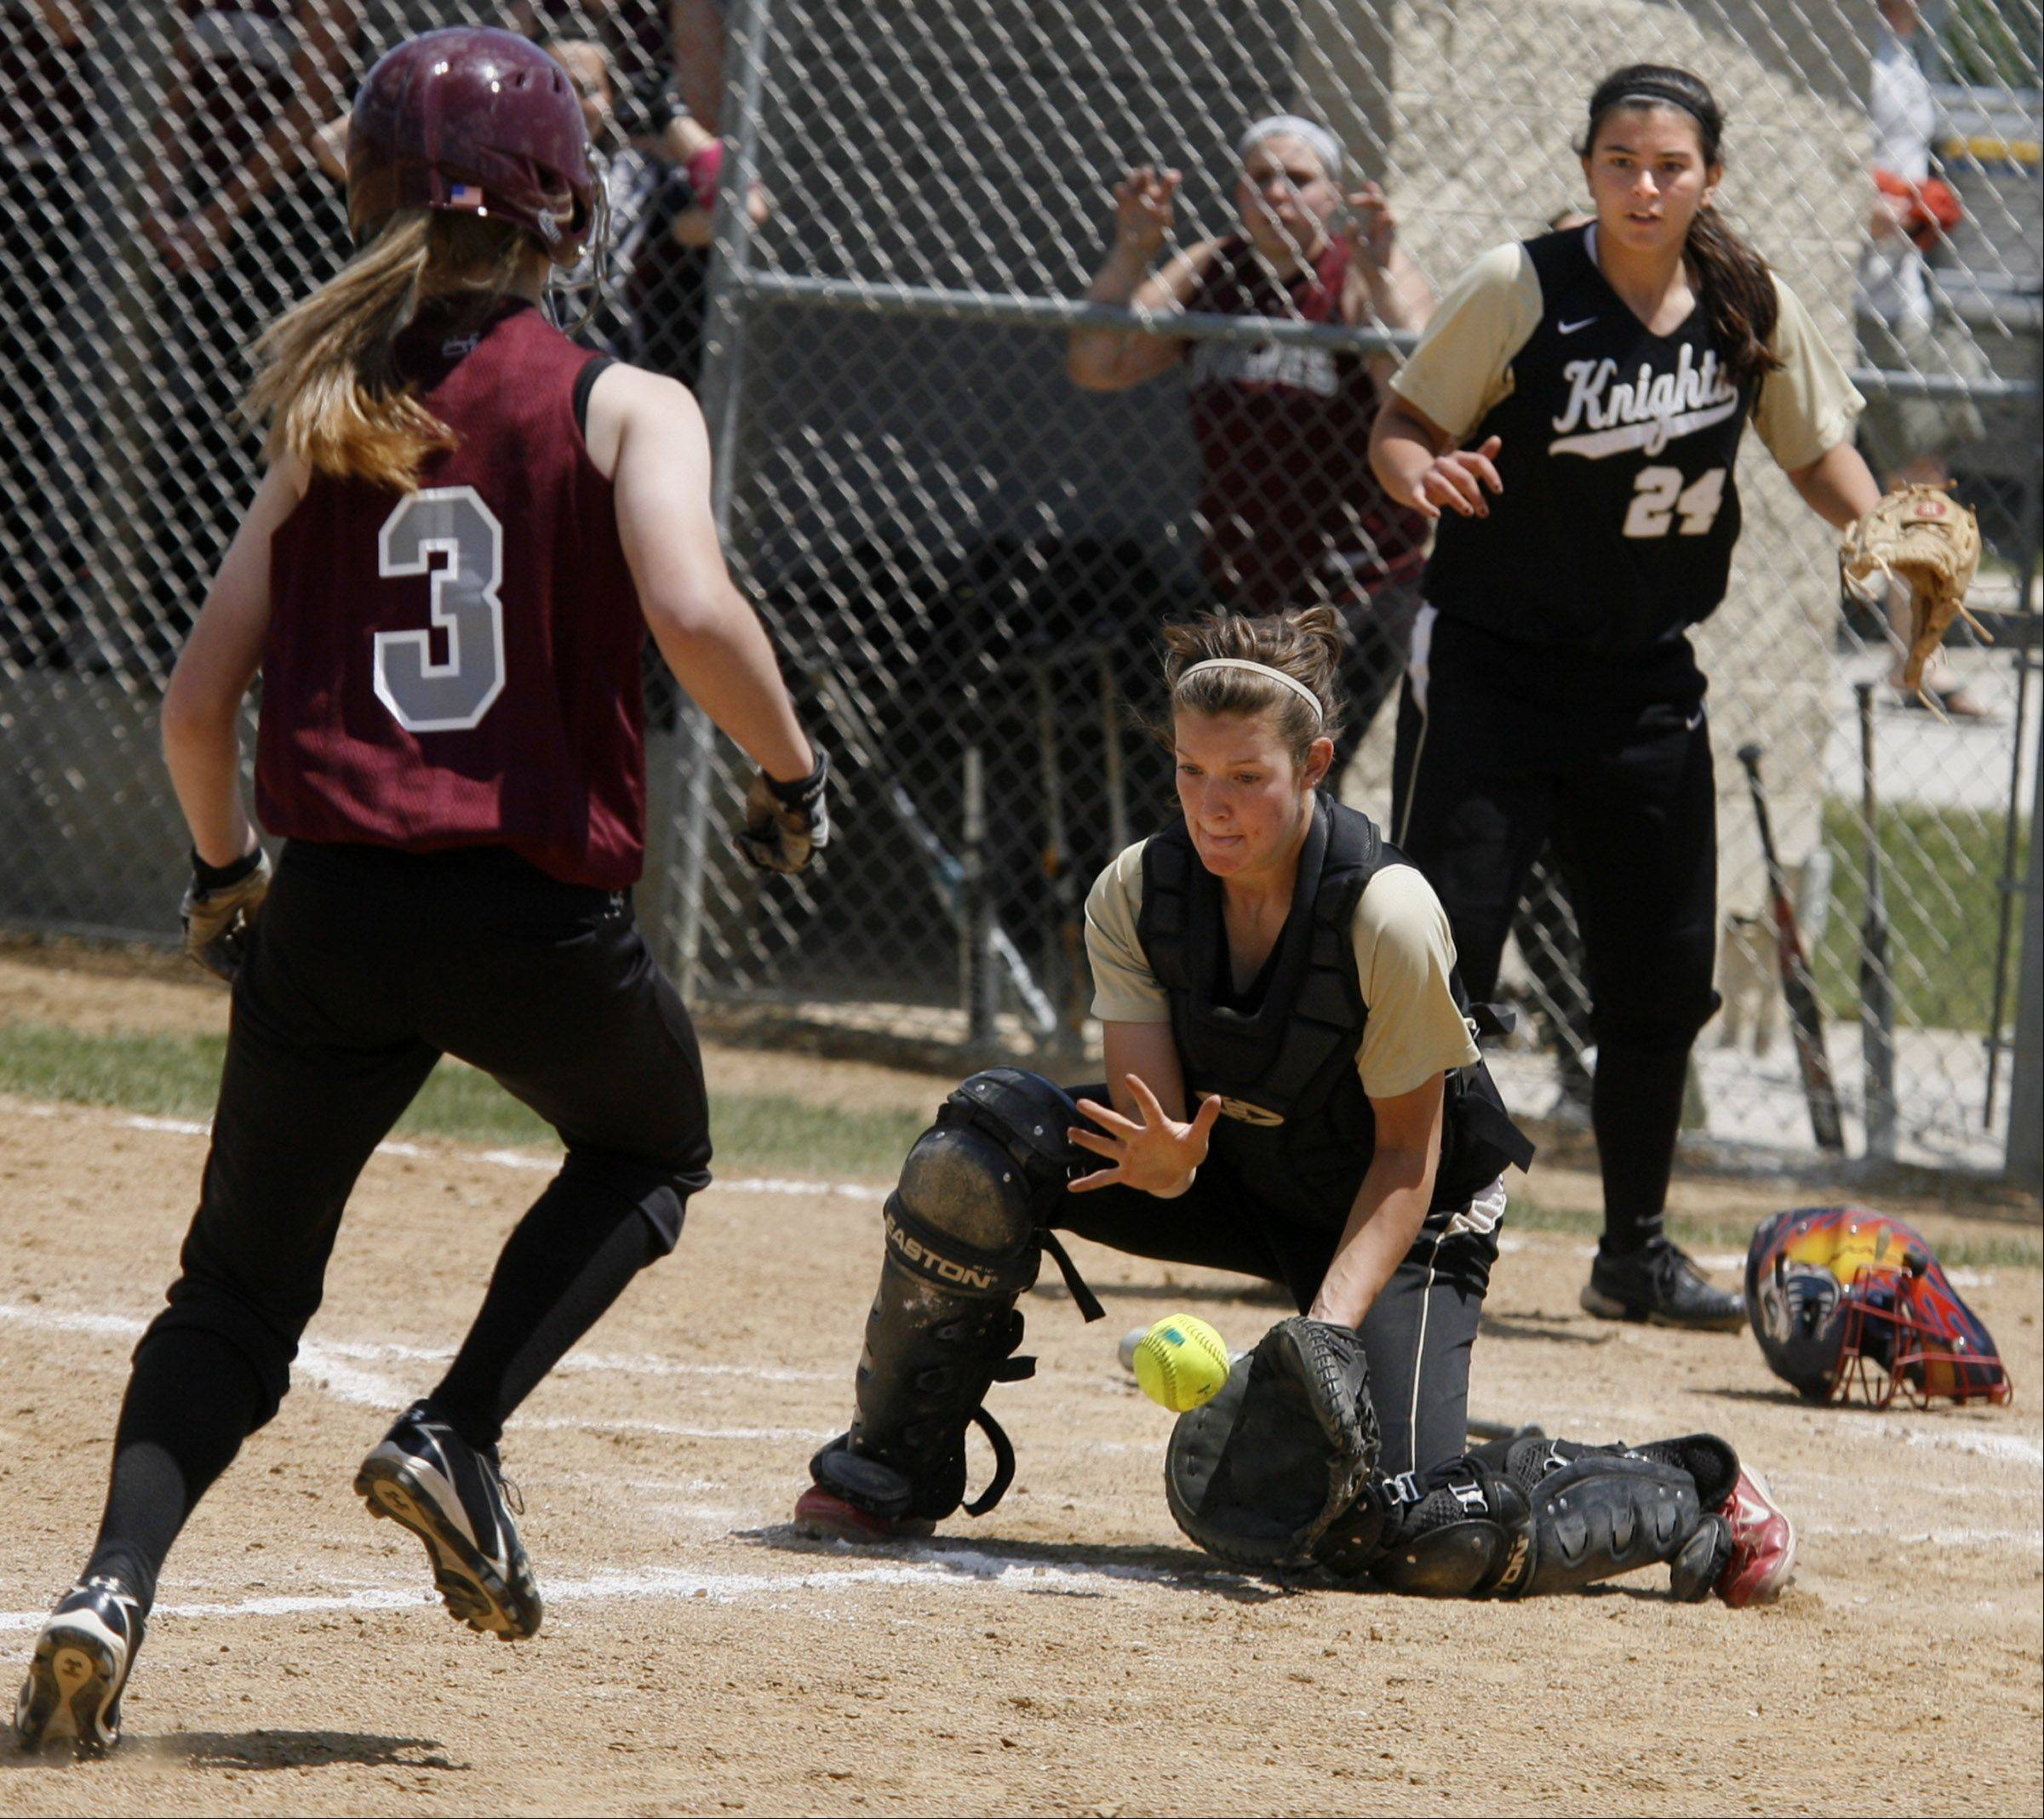 Grayslake North catcher Brooke Tracy catches a throw to the plate backed-up by pitcher Kristina Gandy as Prairie Ridge's Erin Wing is tagged out in the Class 3A Lakes softball sectional final in Lake Villa on Saturday.